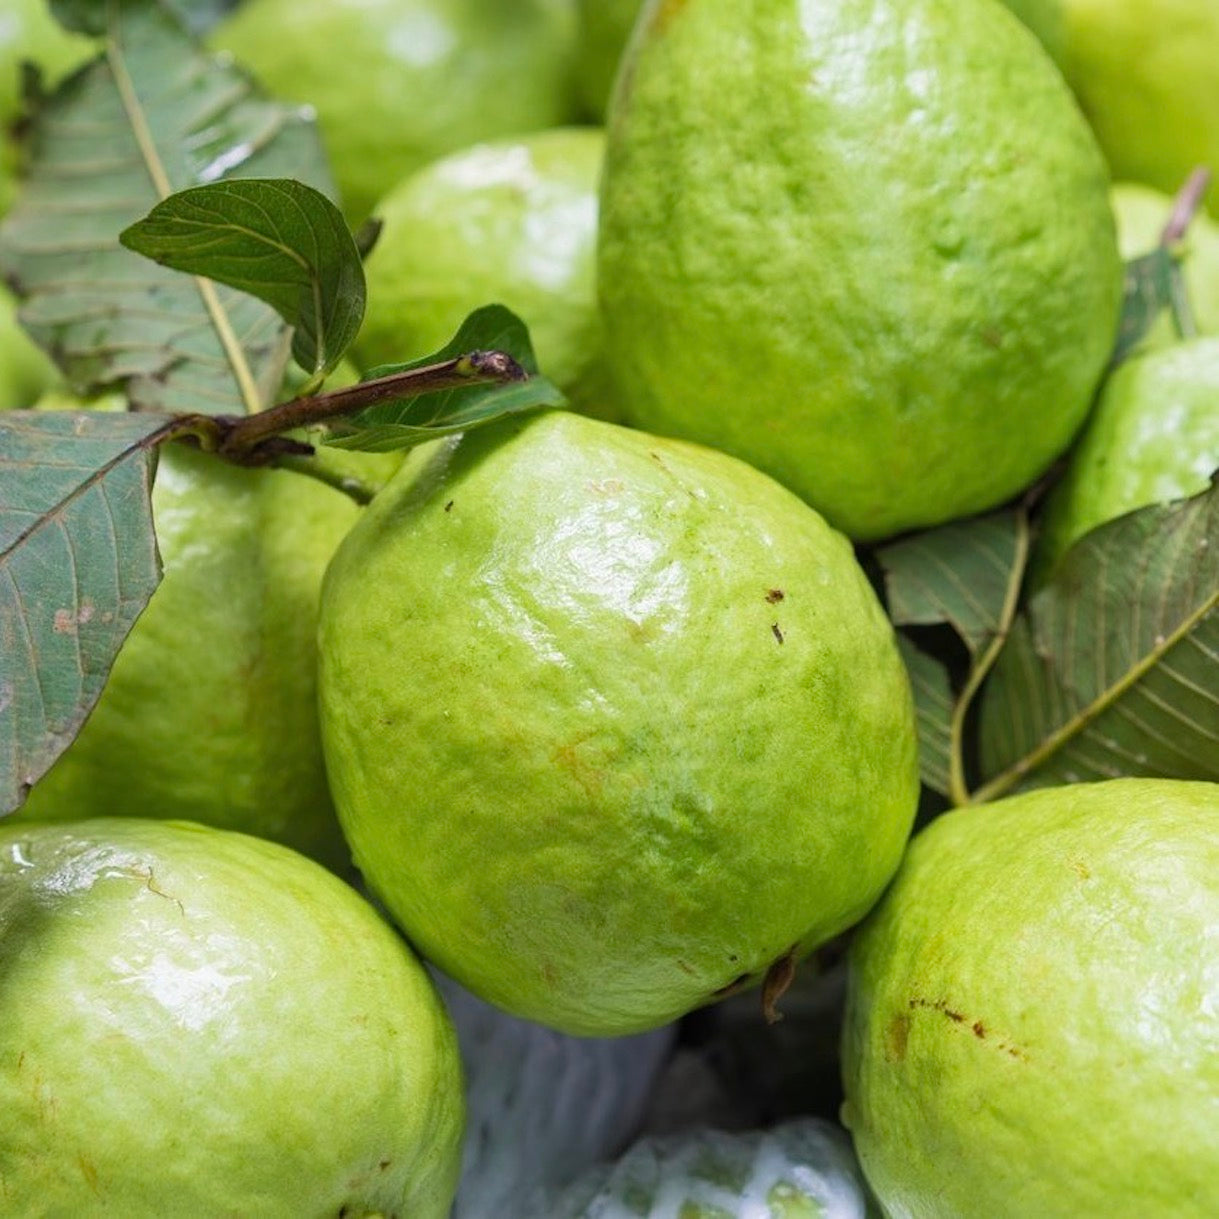 guava-online-grocery-supermarket-thenewgrocer-delivery-singapore